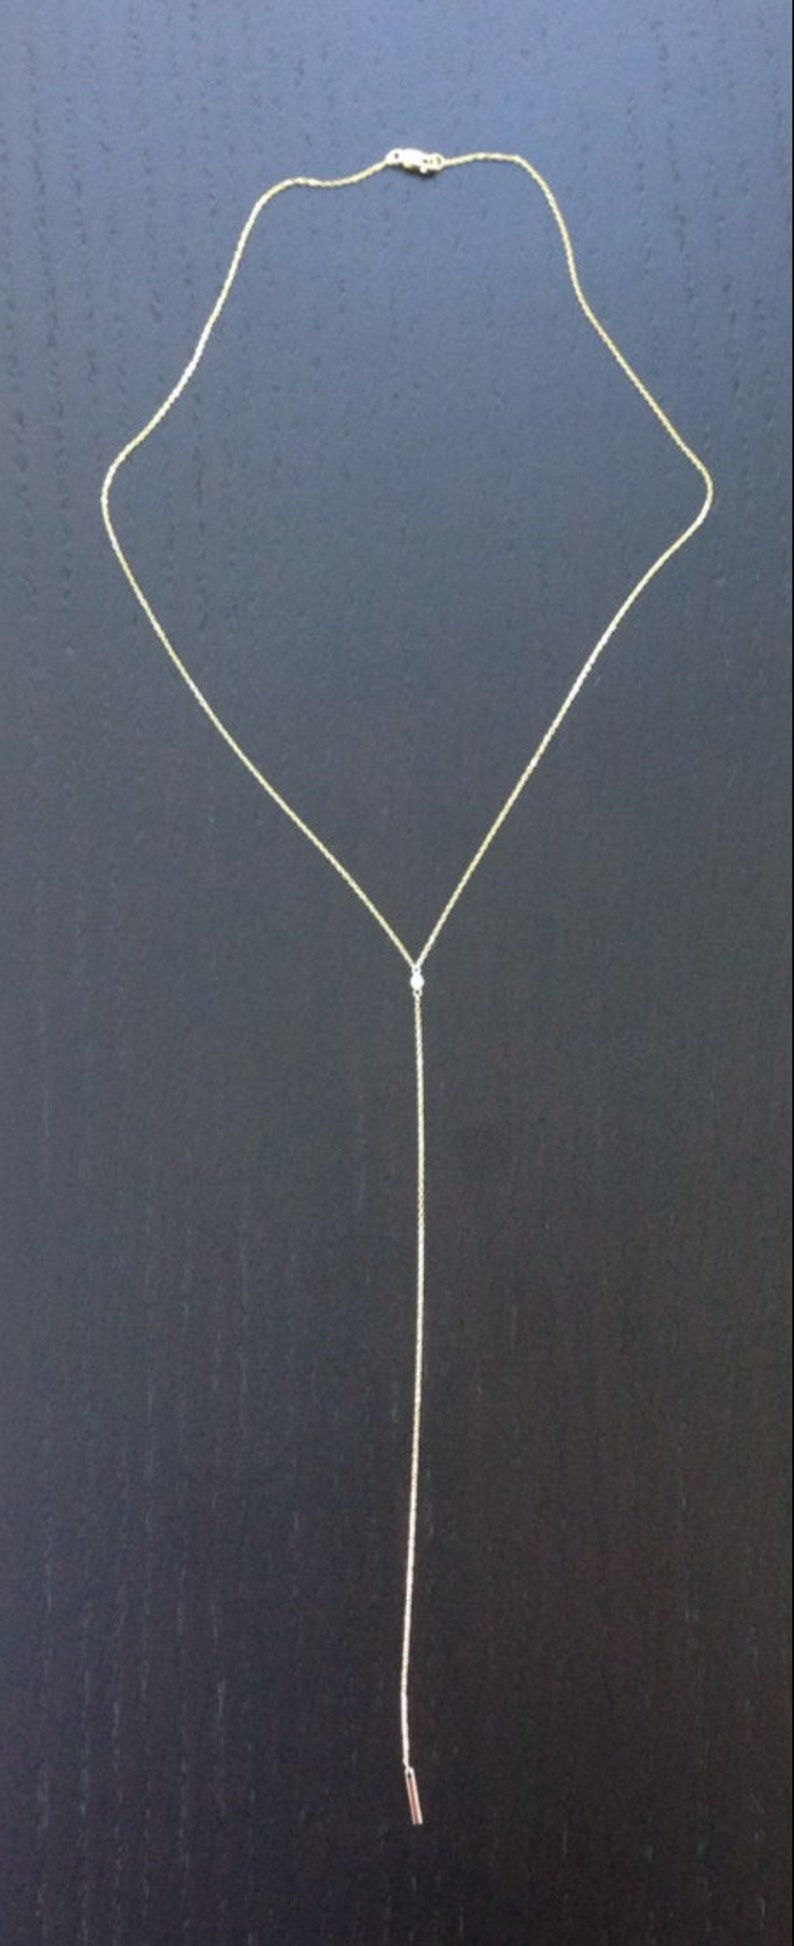 8d714f0452edd 14k solid yellow gold and white diamond, dangling bar necklace, 18